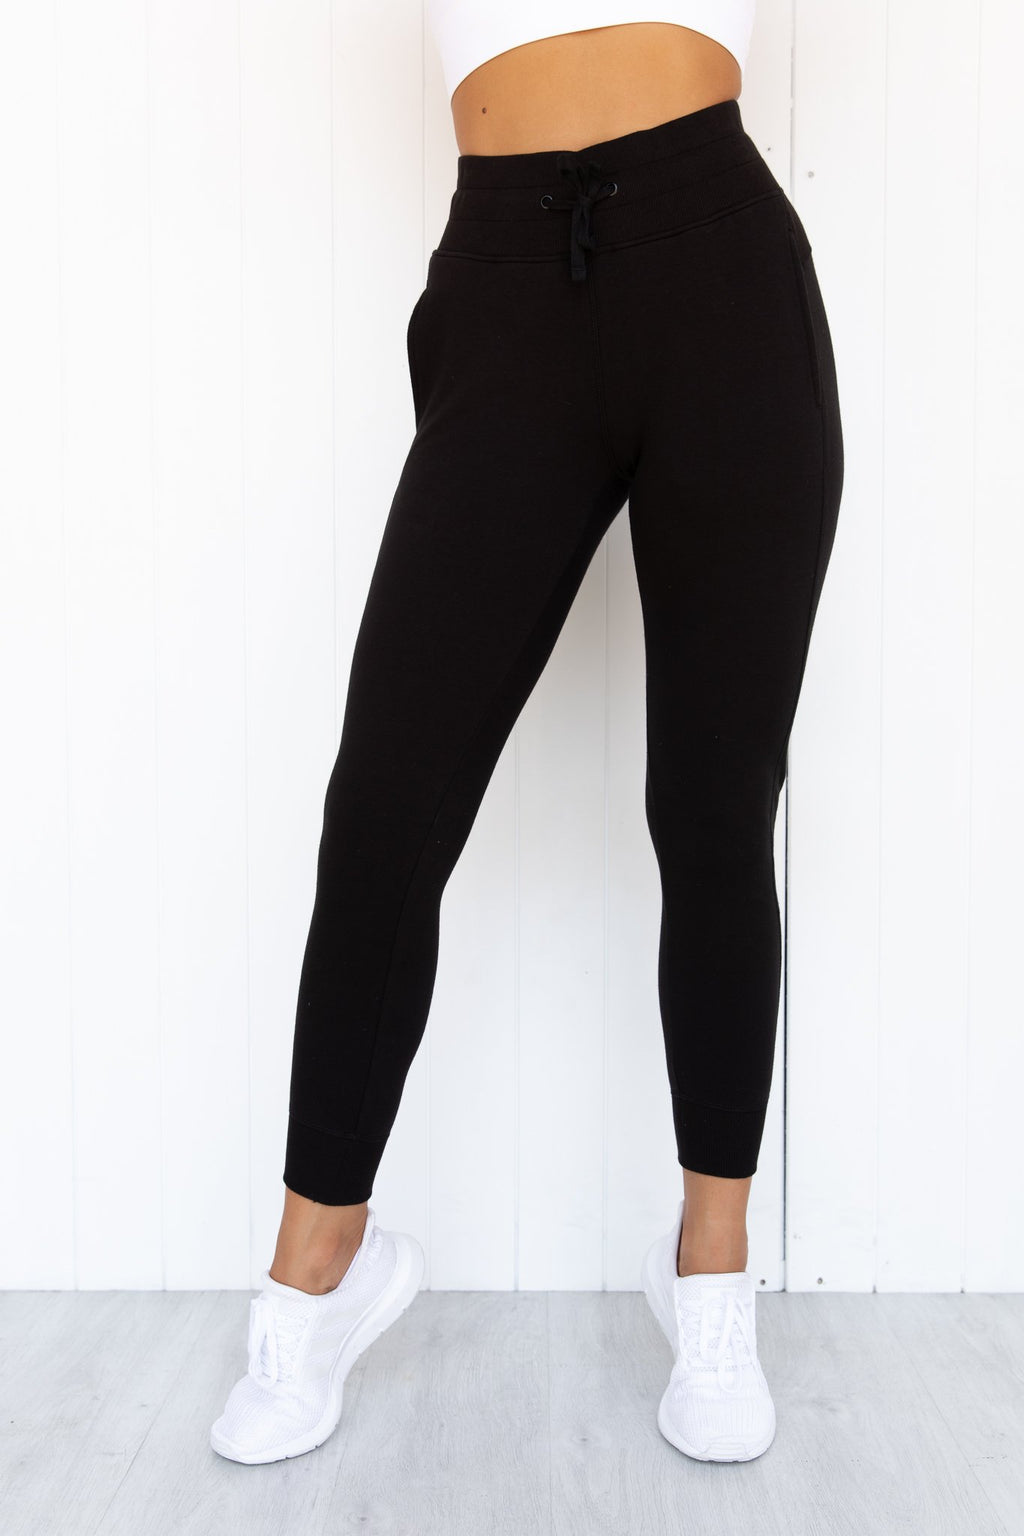 Gia Tarmac Black Stretch French Terry Jogger - PURE DASH